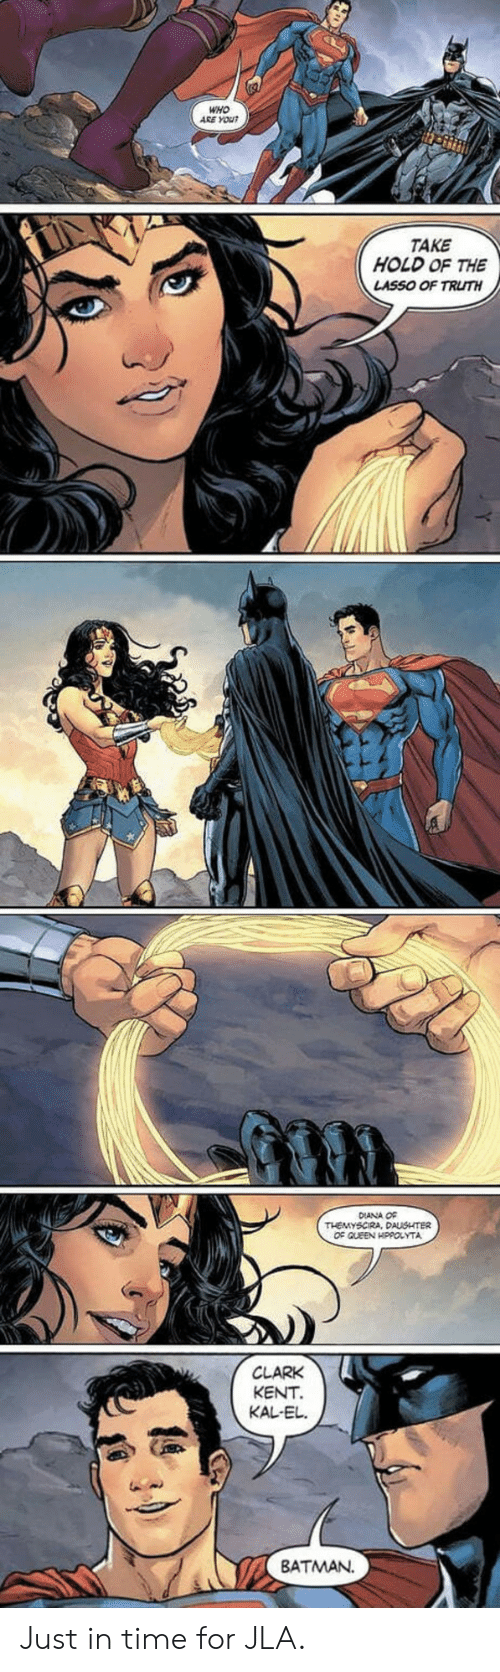 Clark Kent: WHO  ARE YOU  TAKE  HOLD OF THE  LASSO OF TRUTH  DIANA O¢  OF QLEEN HPPOLYTA  CLARK  KENT  KAL-EL.  BATMAN Just in time for JLA.